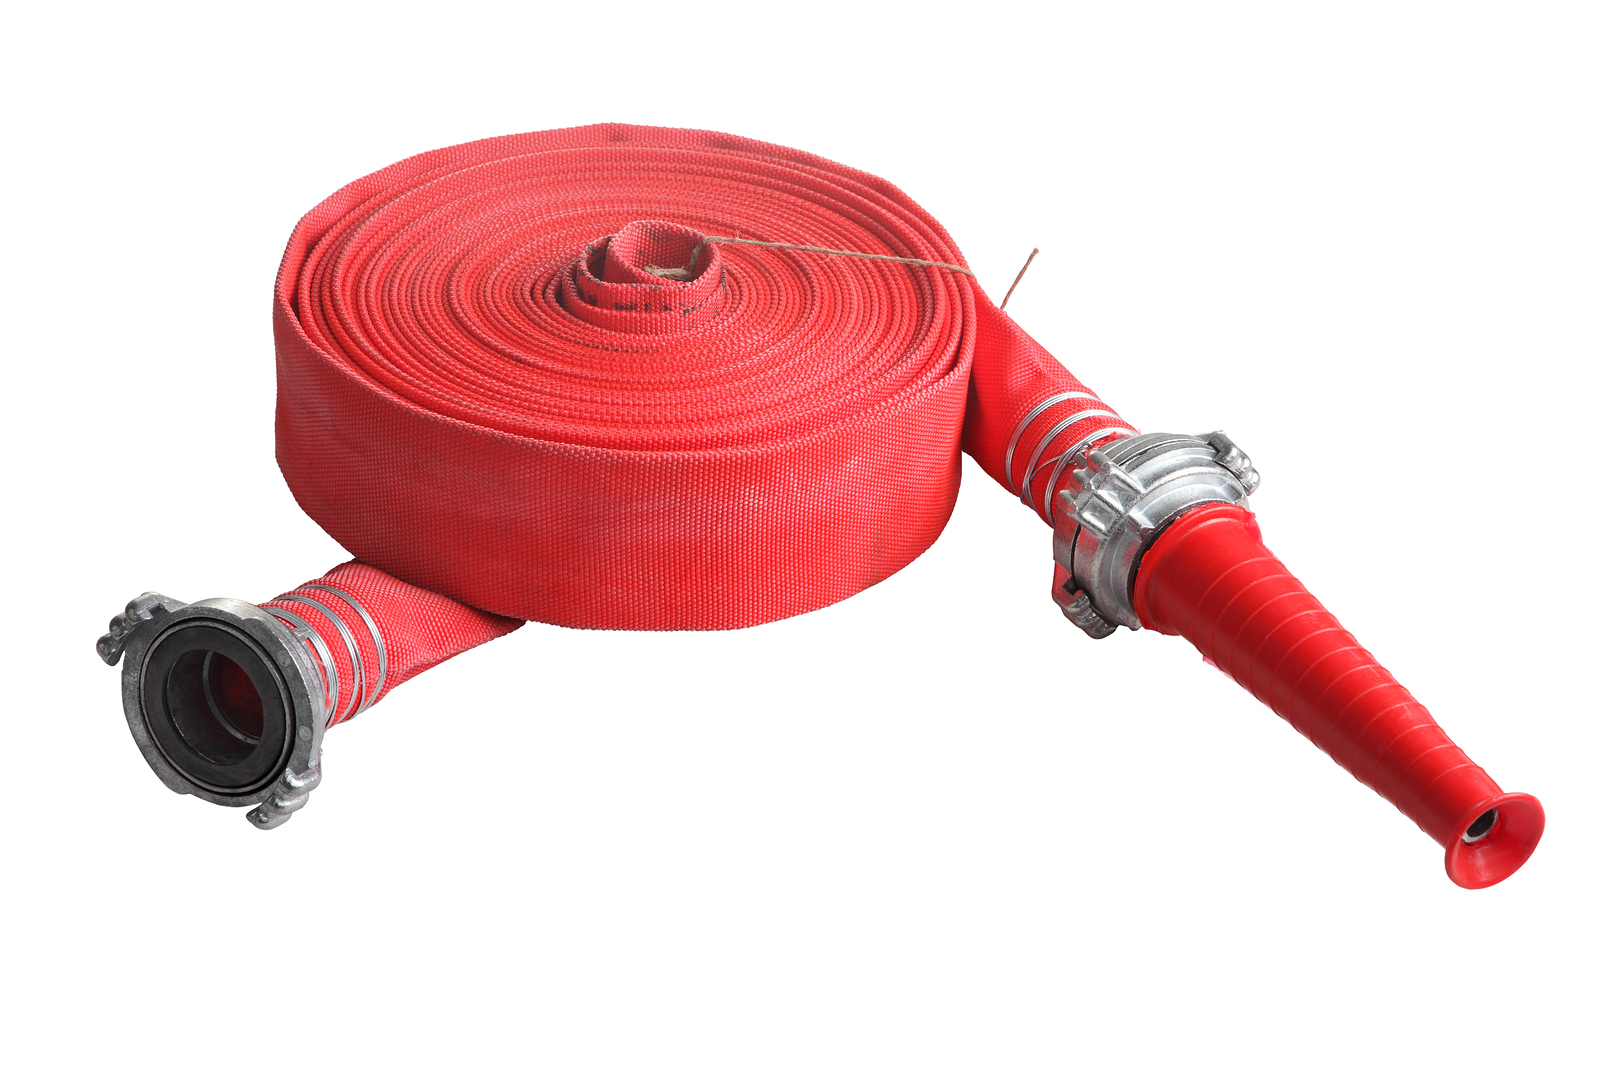 Red Fire Fighting Hose Soft Pipe, Isolated On White Background.